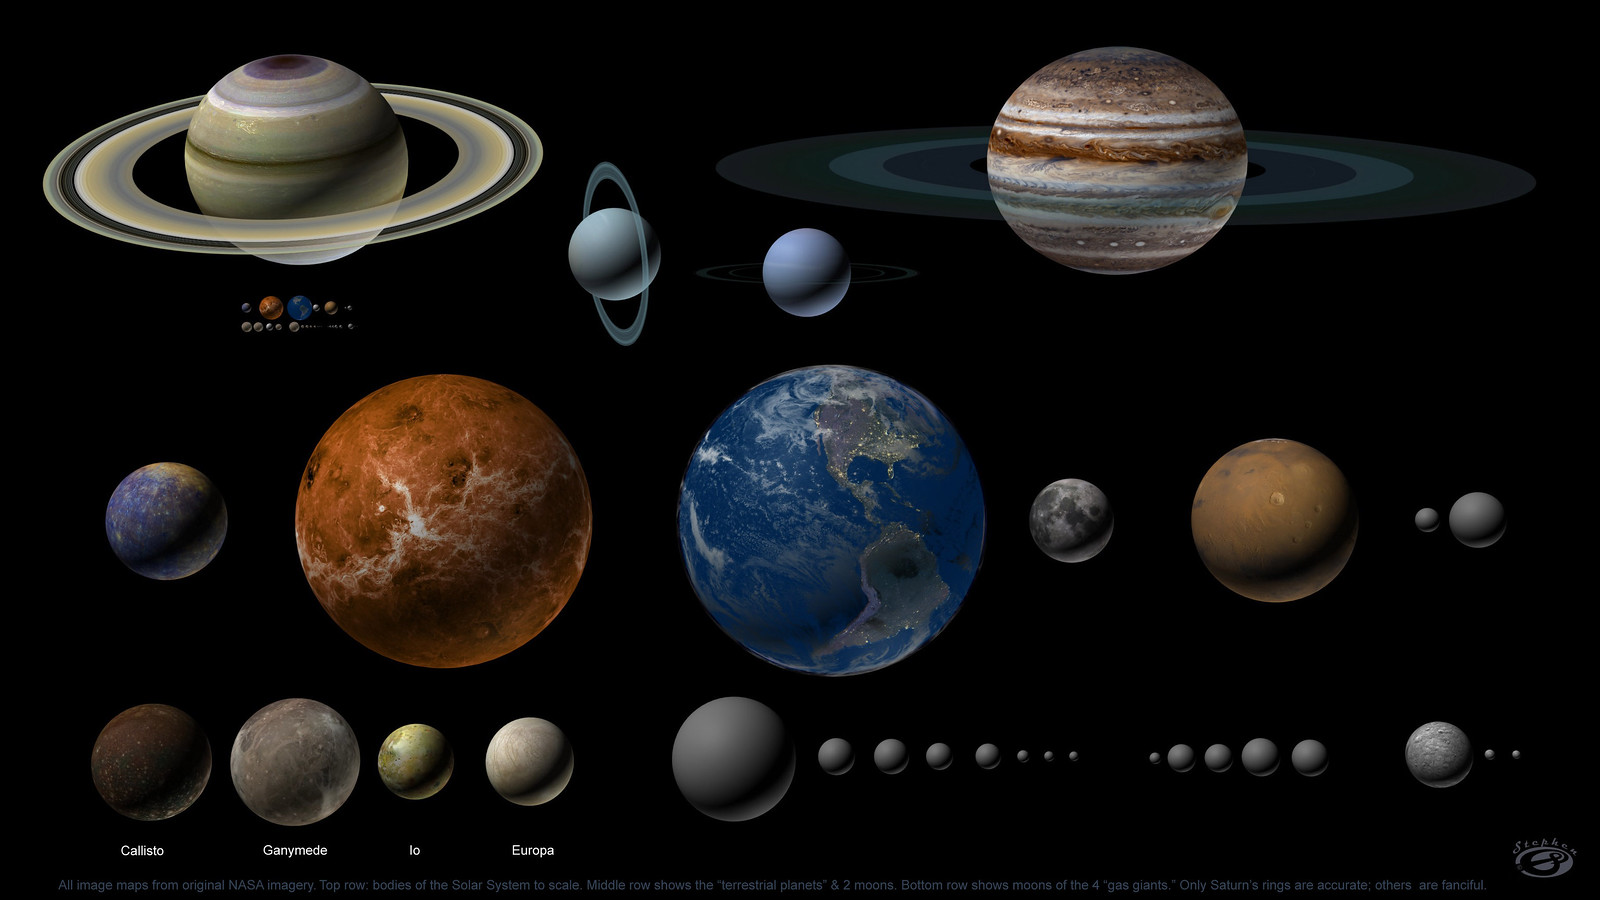 Solar System Diagram, updated | The diagram shows the larger